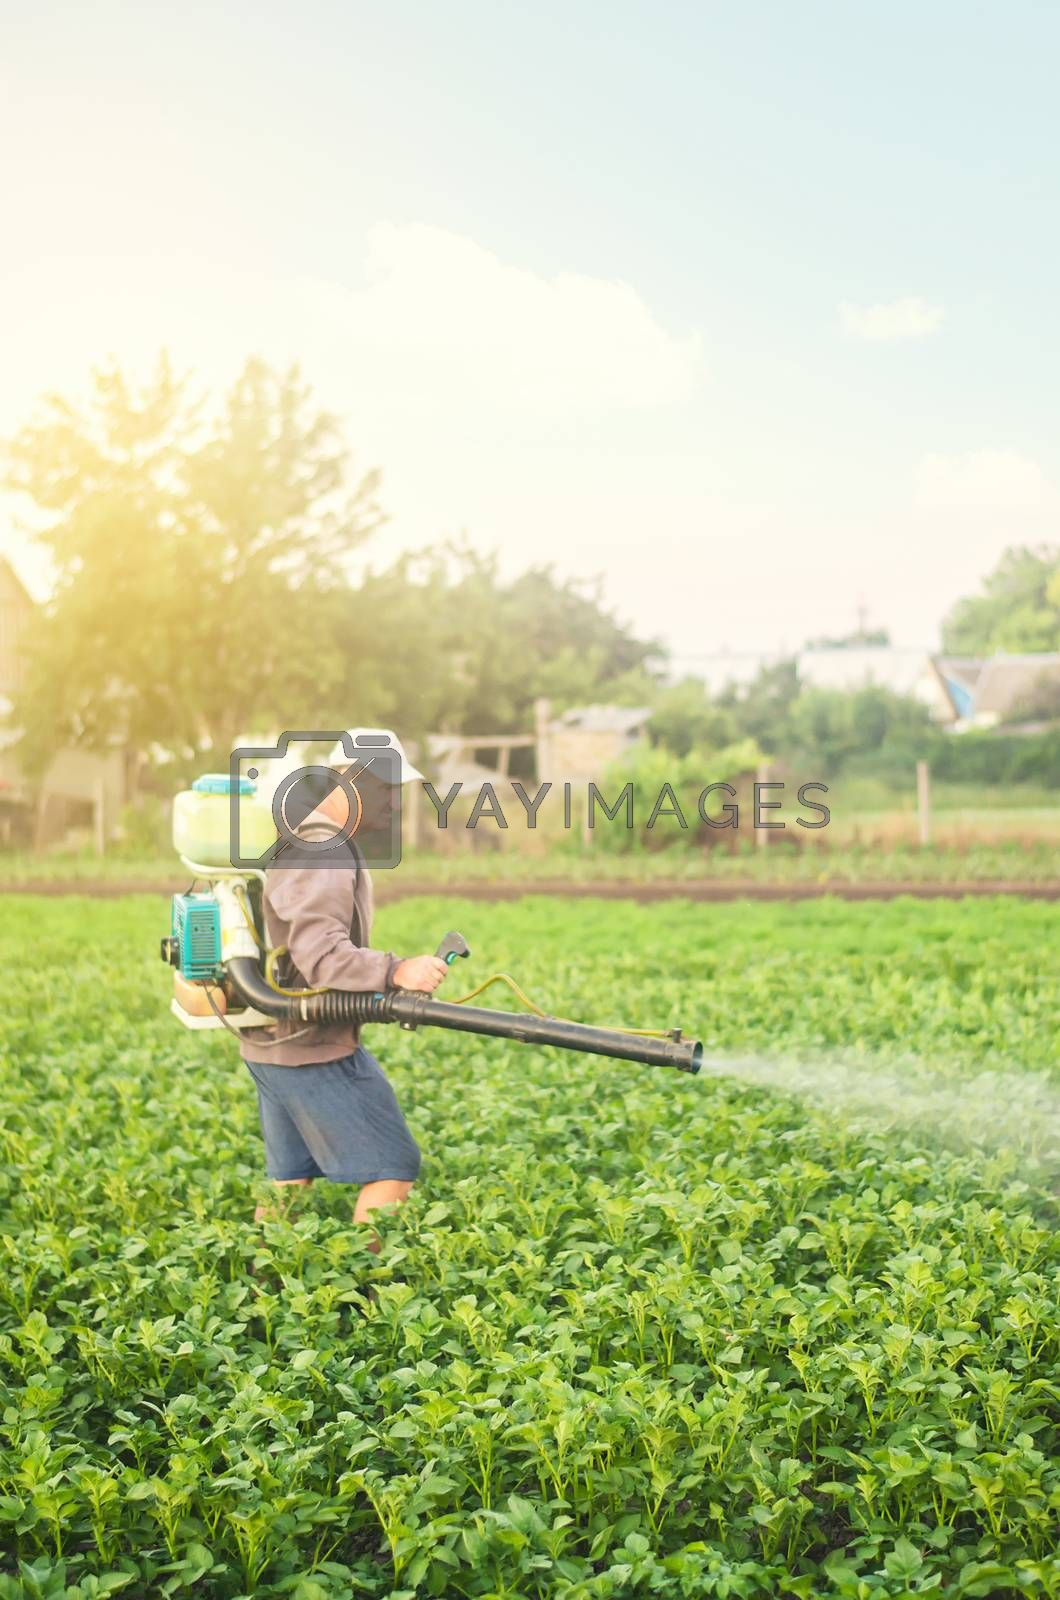 A farmer with a mist sprayer spray treats the potato plantation from pests and fungus infection. Harvest processing. Protection and care. Agriculture and agribusiness. Use chemicals in agriculture. by iLixe48